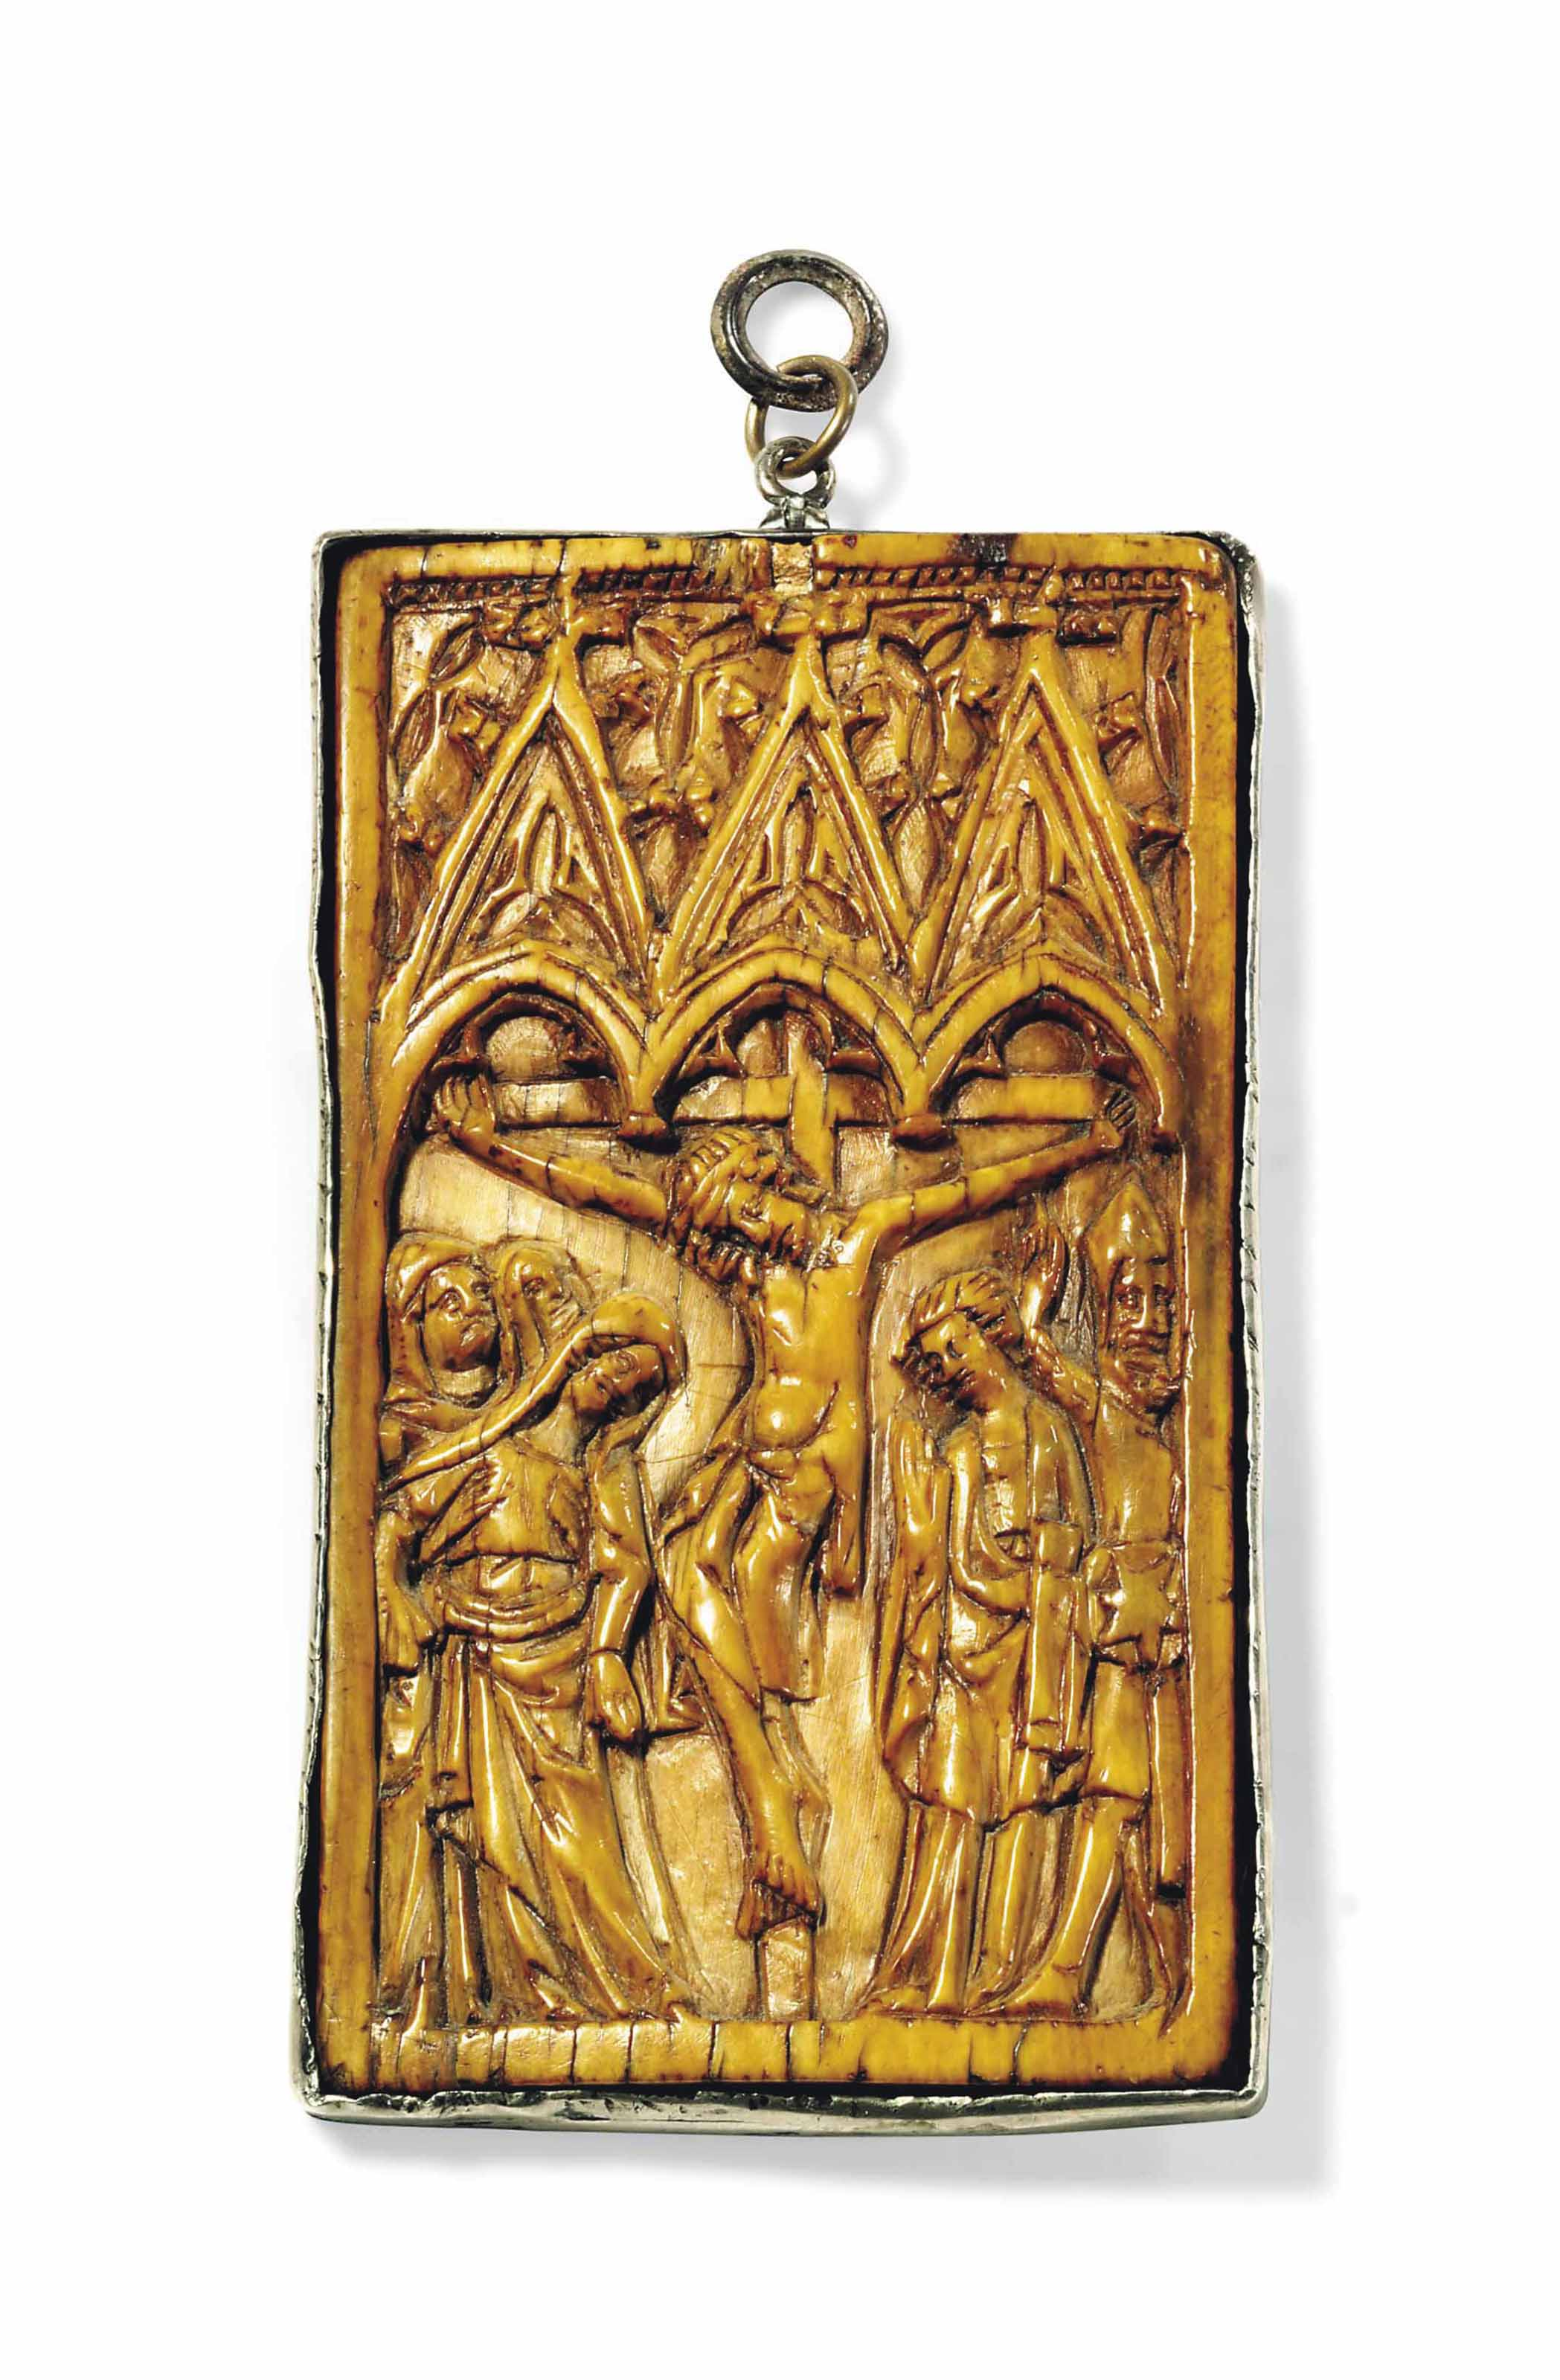 A RECTANGULAR CARVED IVORY RELIEF OF THE CRUCIFIXION